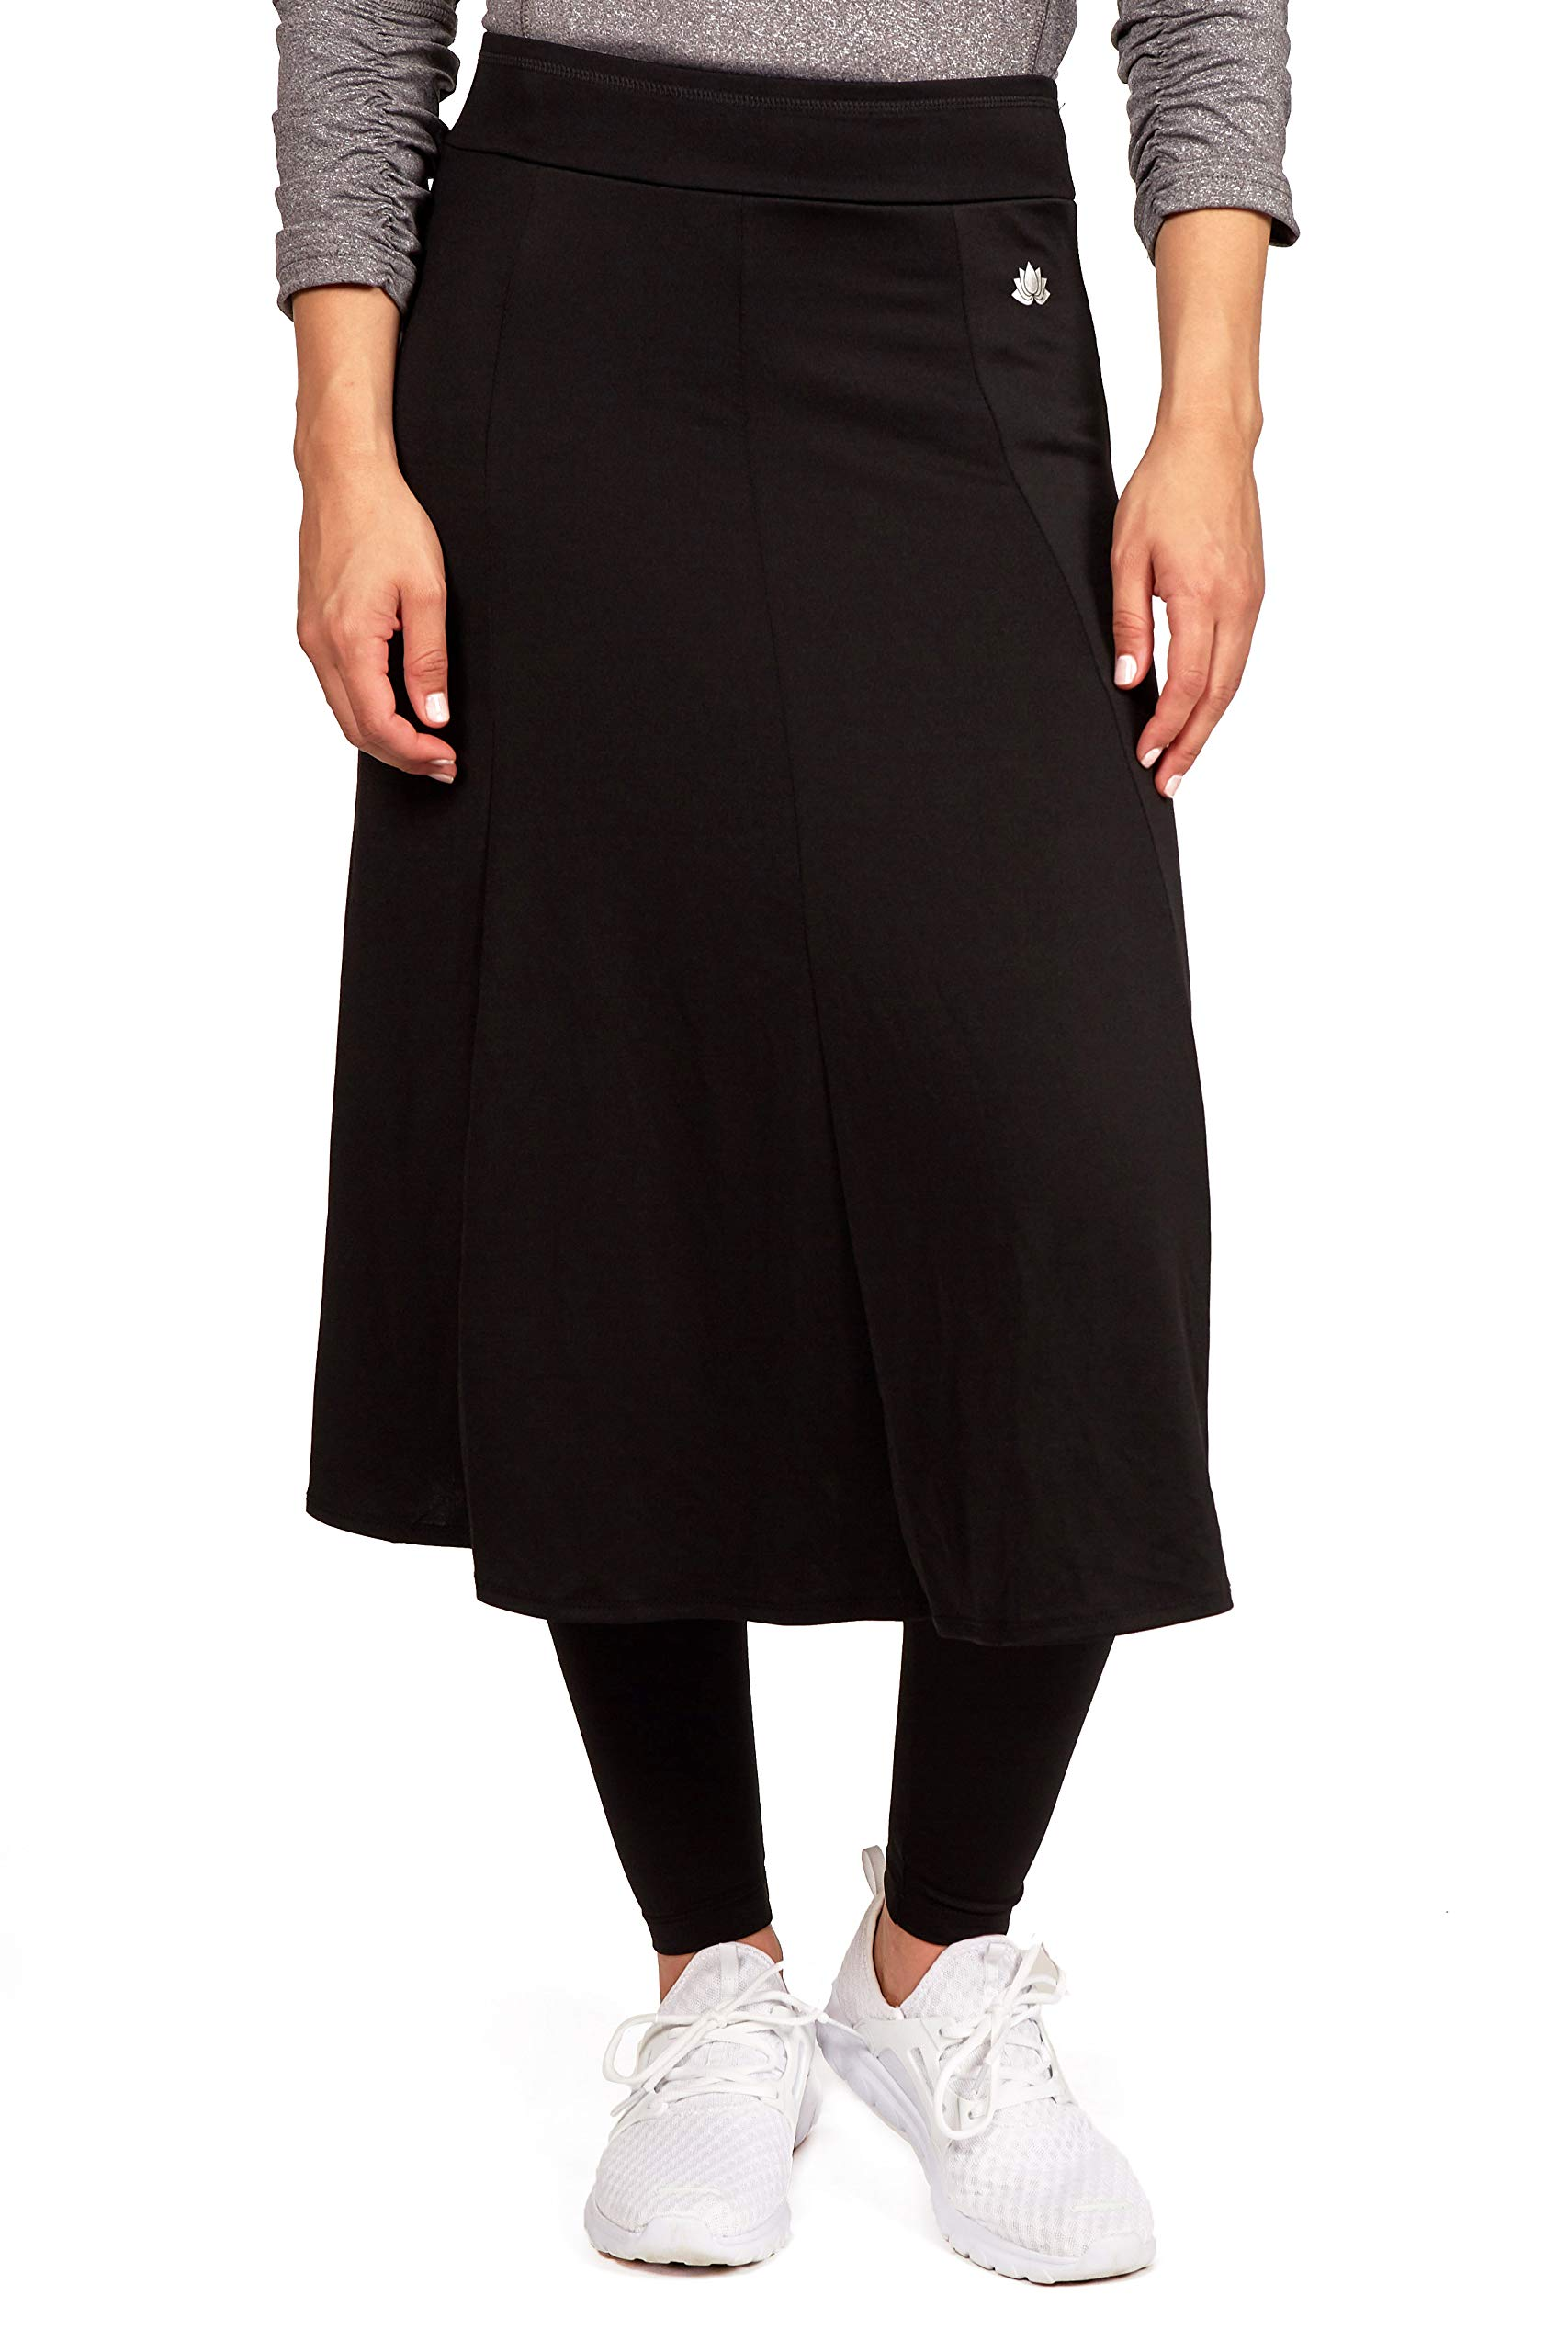 Snoga Full-Coverage Long Twirly Skirt with Attached Full Length Leggings - Black, Small by Snoga Athletics